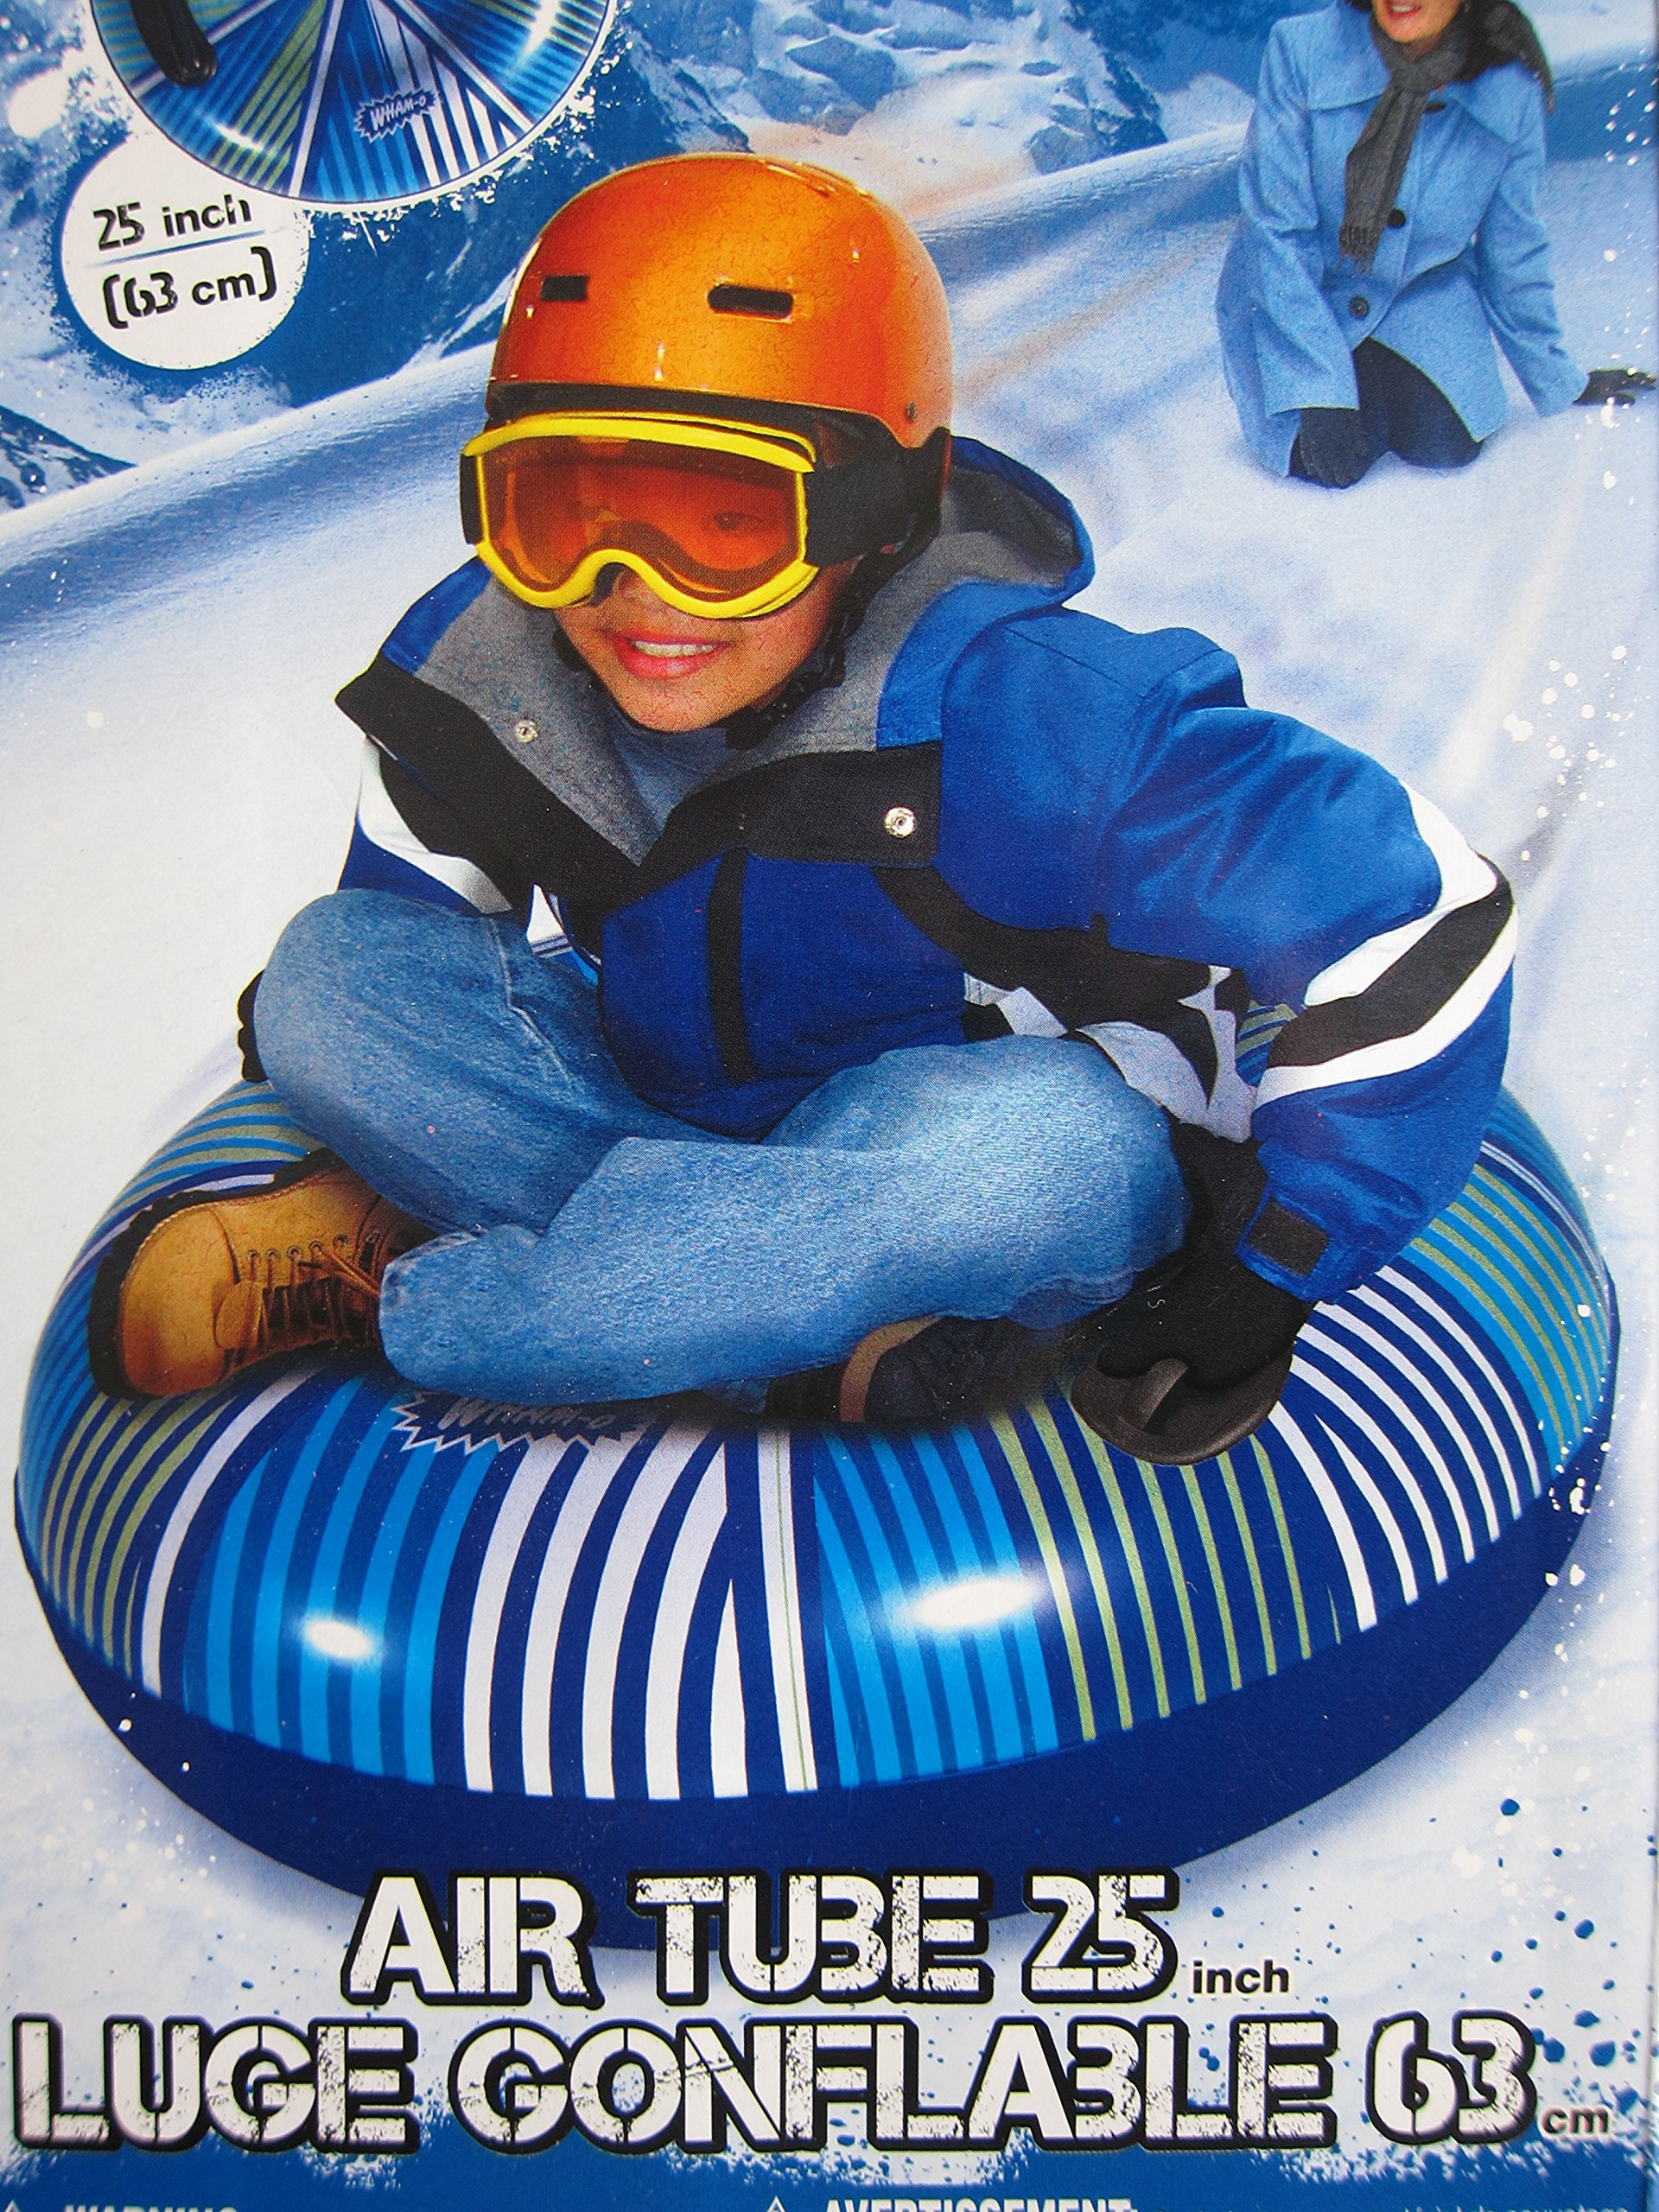 Wham-O Swirling Snow Design 25 Inch Snow Tube